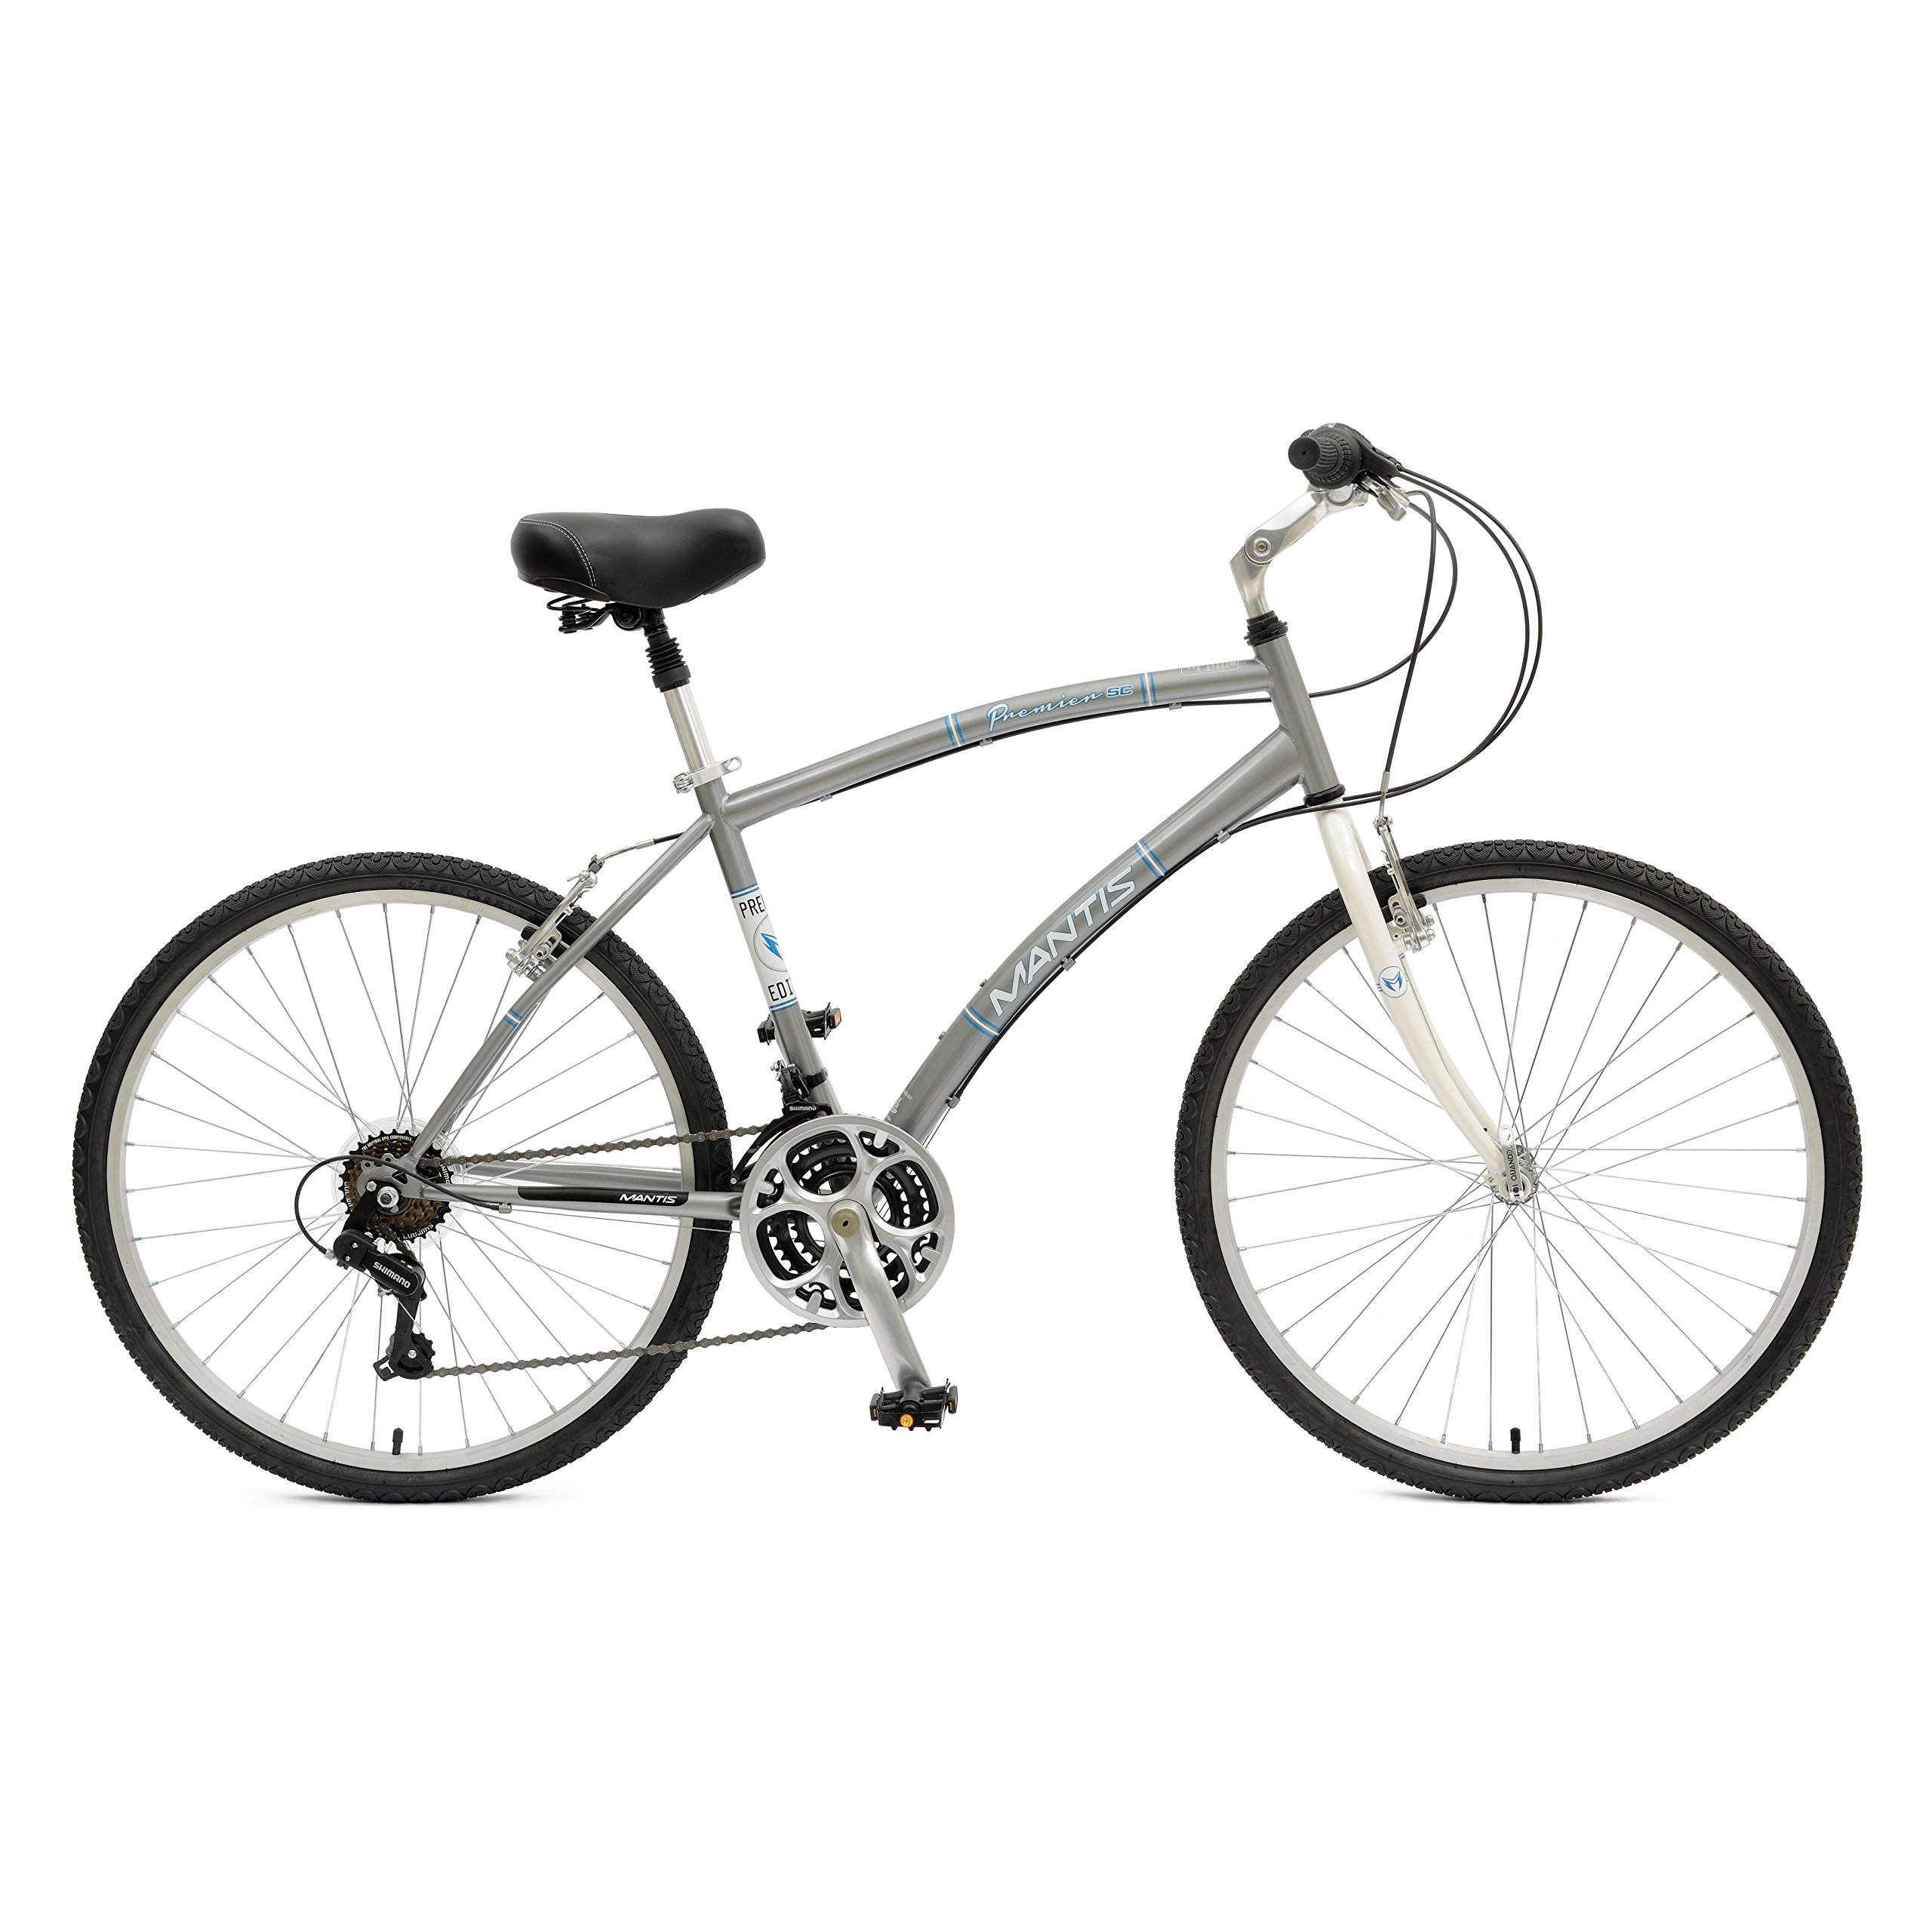 Mantis Premier 726M Comfort Bike, 26 inch Wheels, 18 inch Frame, Men's Bike, Silver